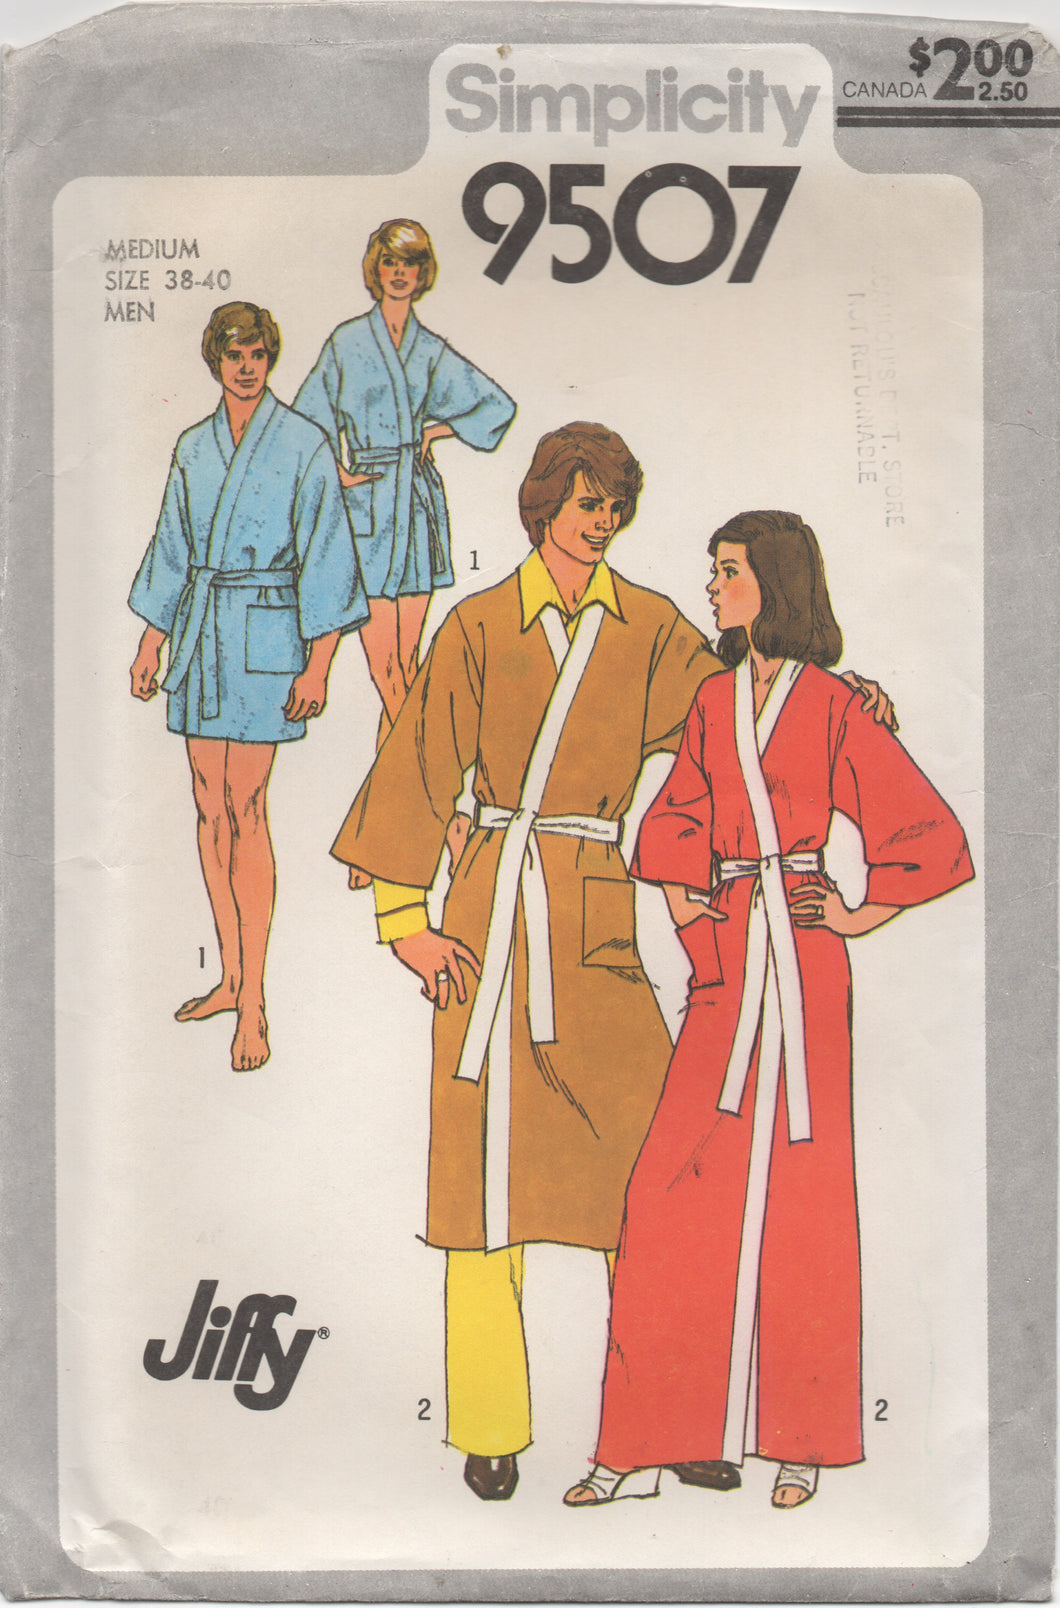 1970's Simplicity Men's Robe Pattern in Two Lengths - Chest 38-40 - No. 9507